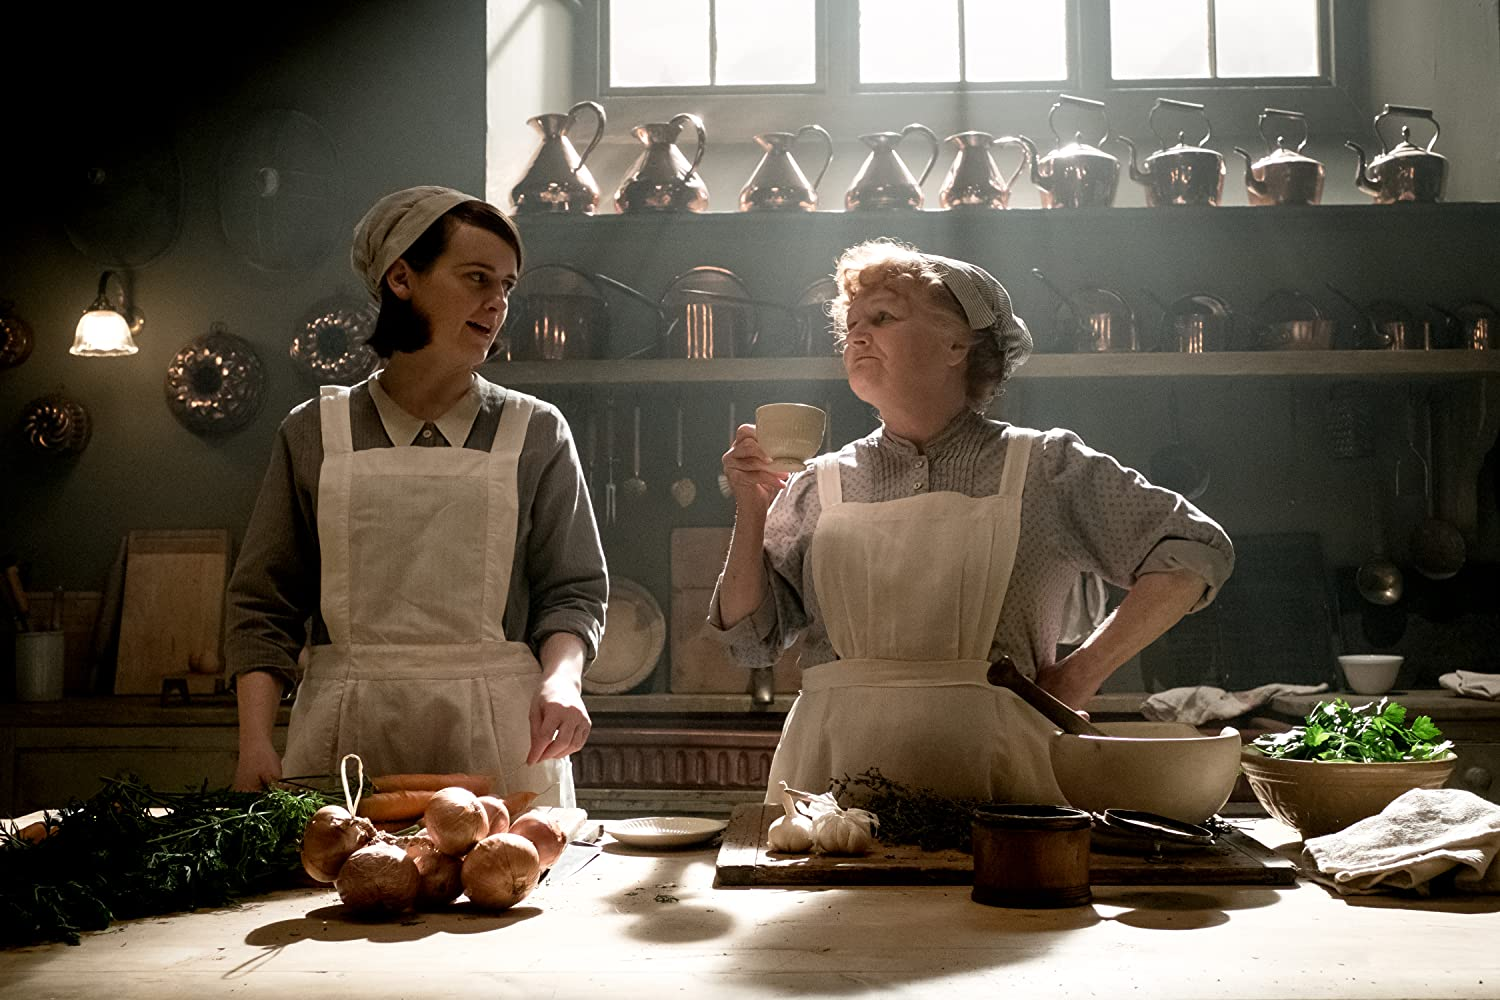 Lesley Nicol and Sophie McShera in Downton Abbey (2019)